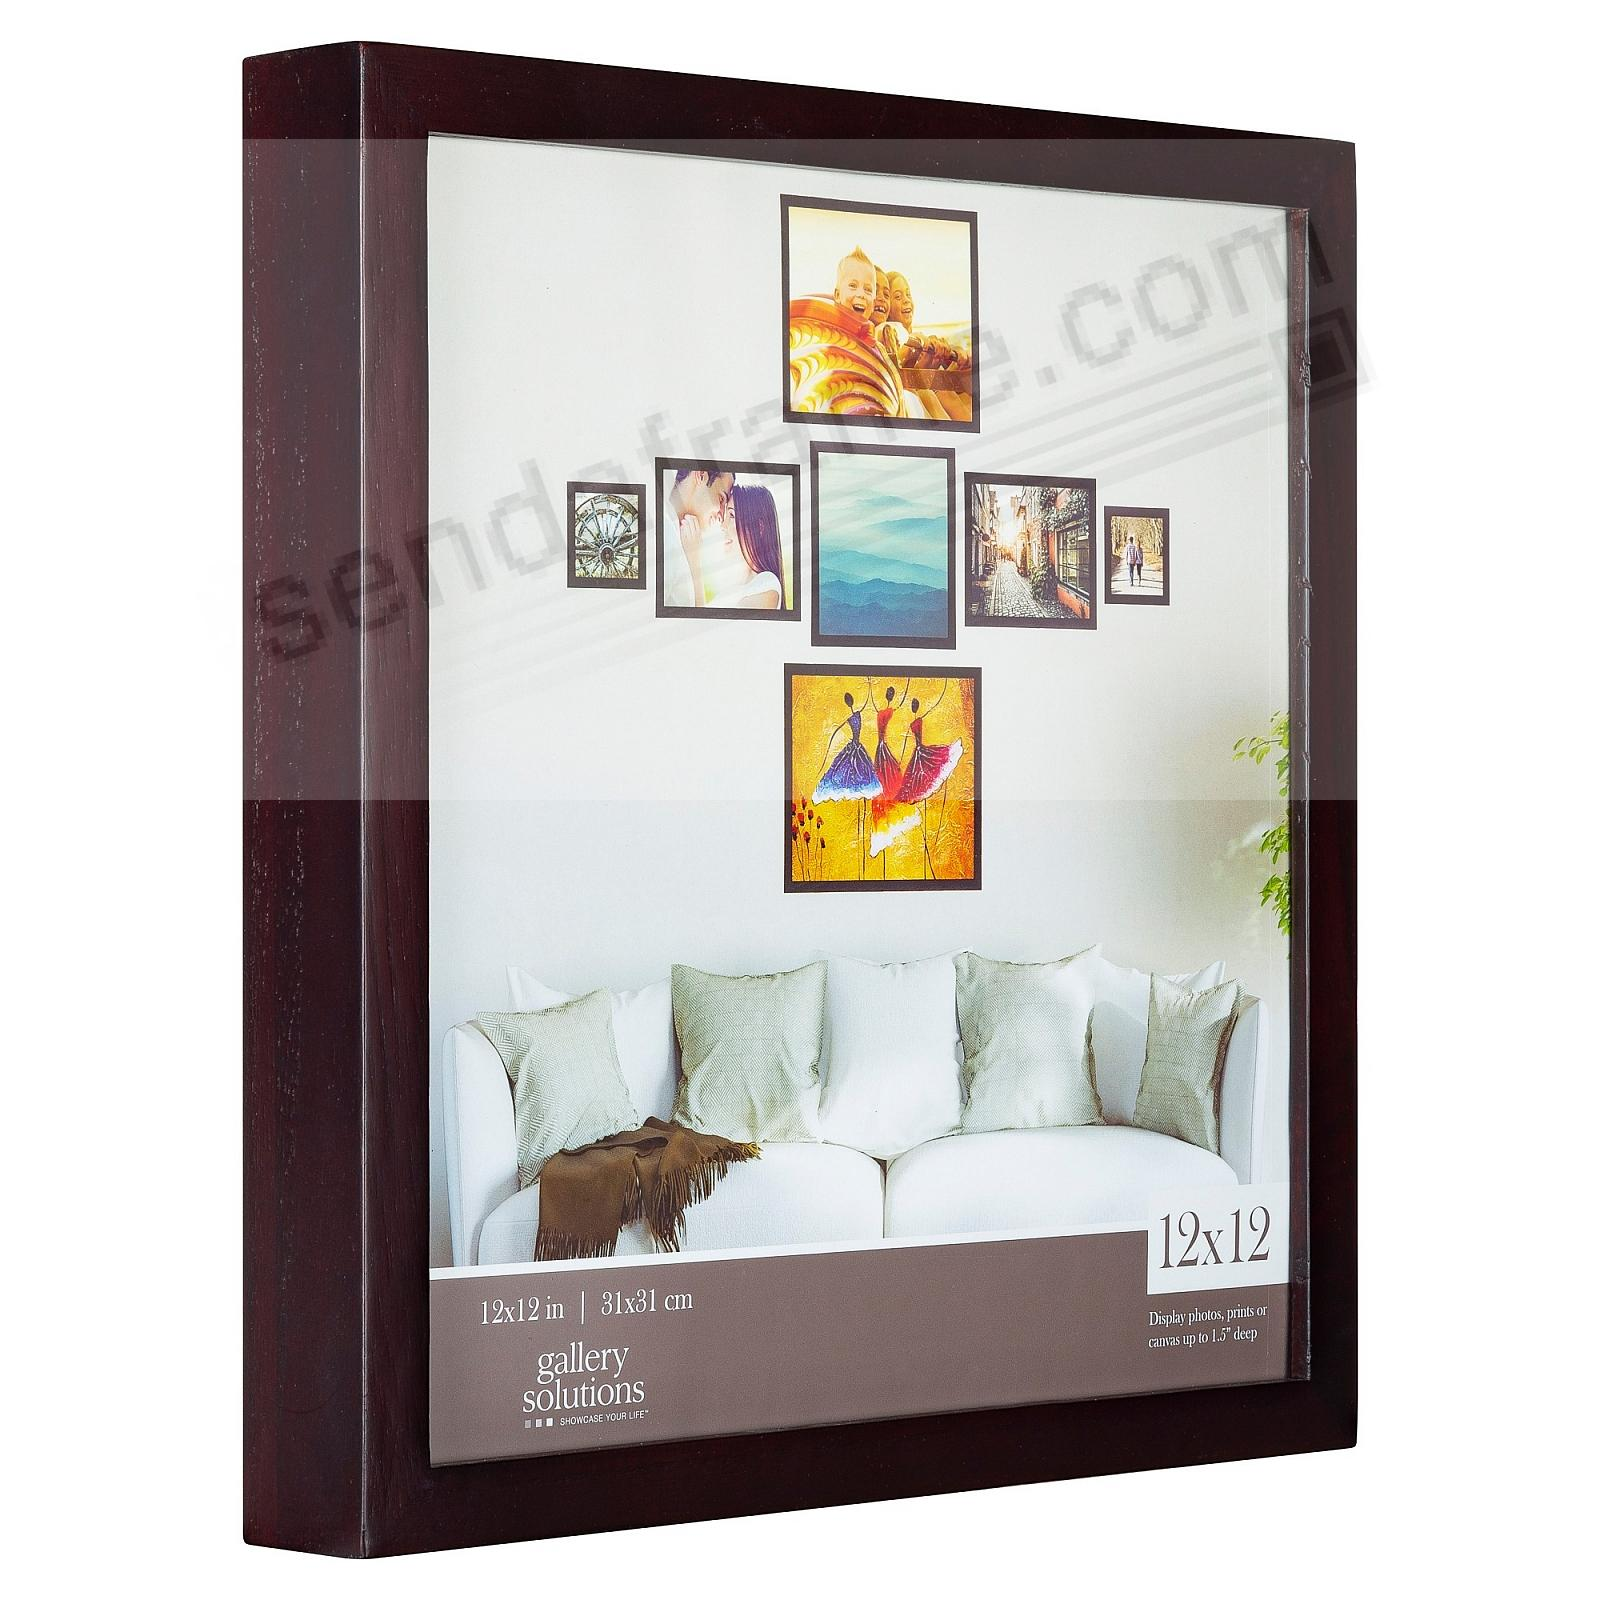 Walnut GALLERY 12x12 frame by Gallery Solutions®